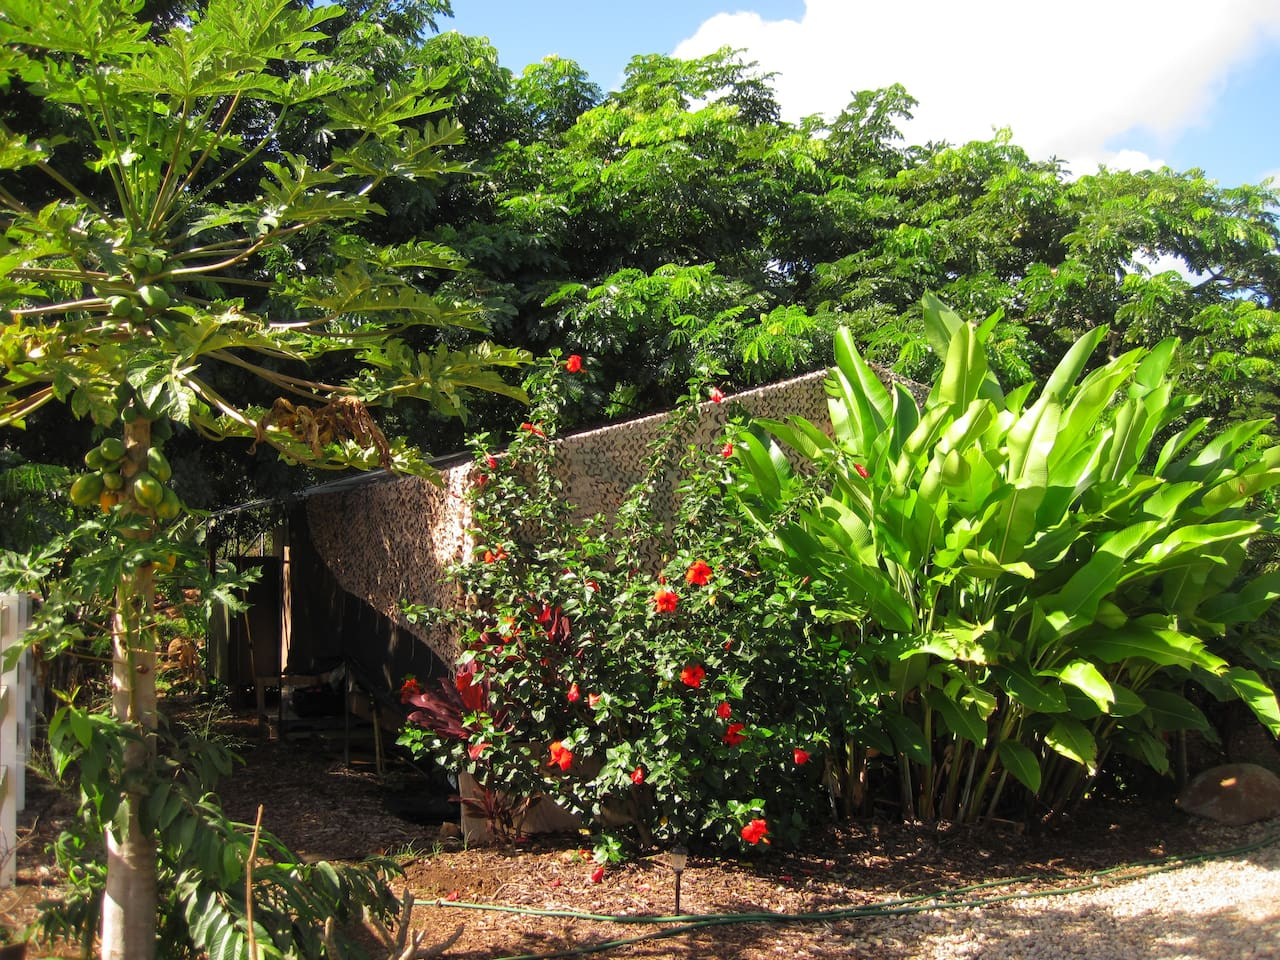 The tent is nestled under monkeypod trees and surrounded by flowers and fresh fruit